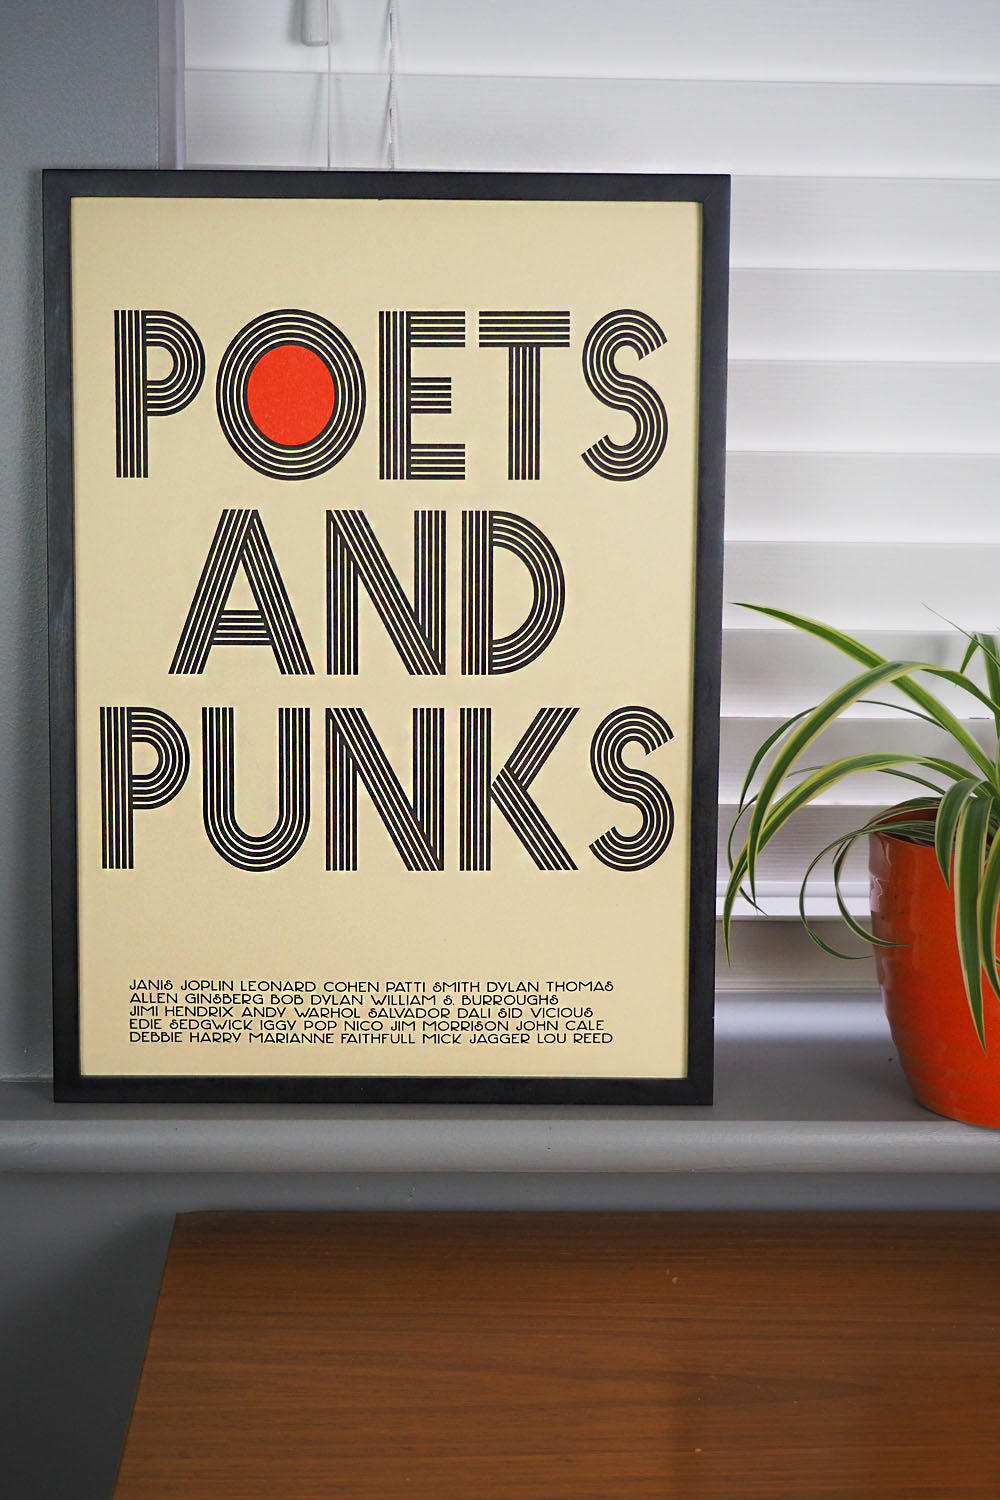 Inspired by 1960s and 70's punks, poets, muses and musicians. This retro cream A3 poster features names of legends from the Chelsea Hotel from Patti Smith and Iggy Pop to Dylan Thomas and Allen Ginsberg.  Printed in Nottingham by Dizzy Ink using risograph printing giving it a beat up hazy band and protest poster feel.